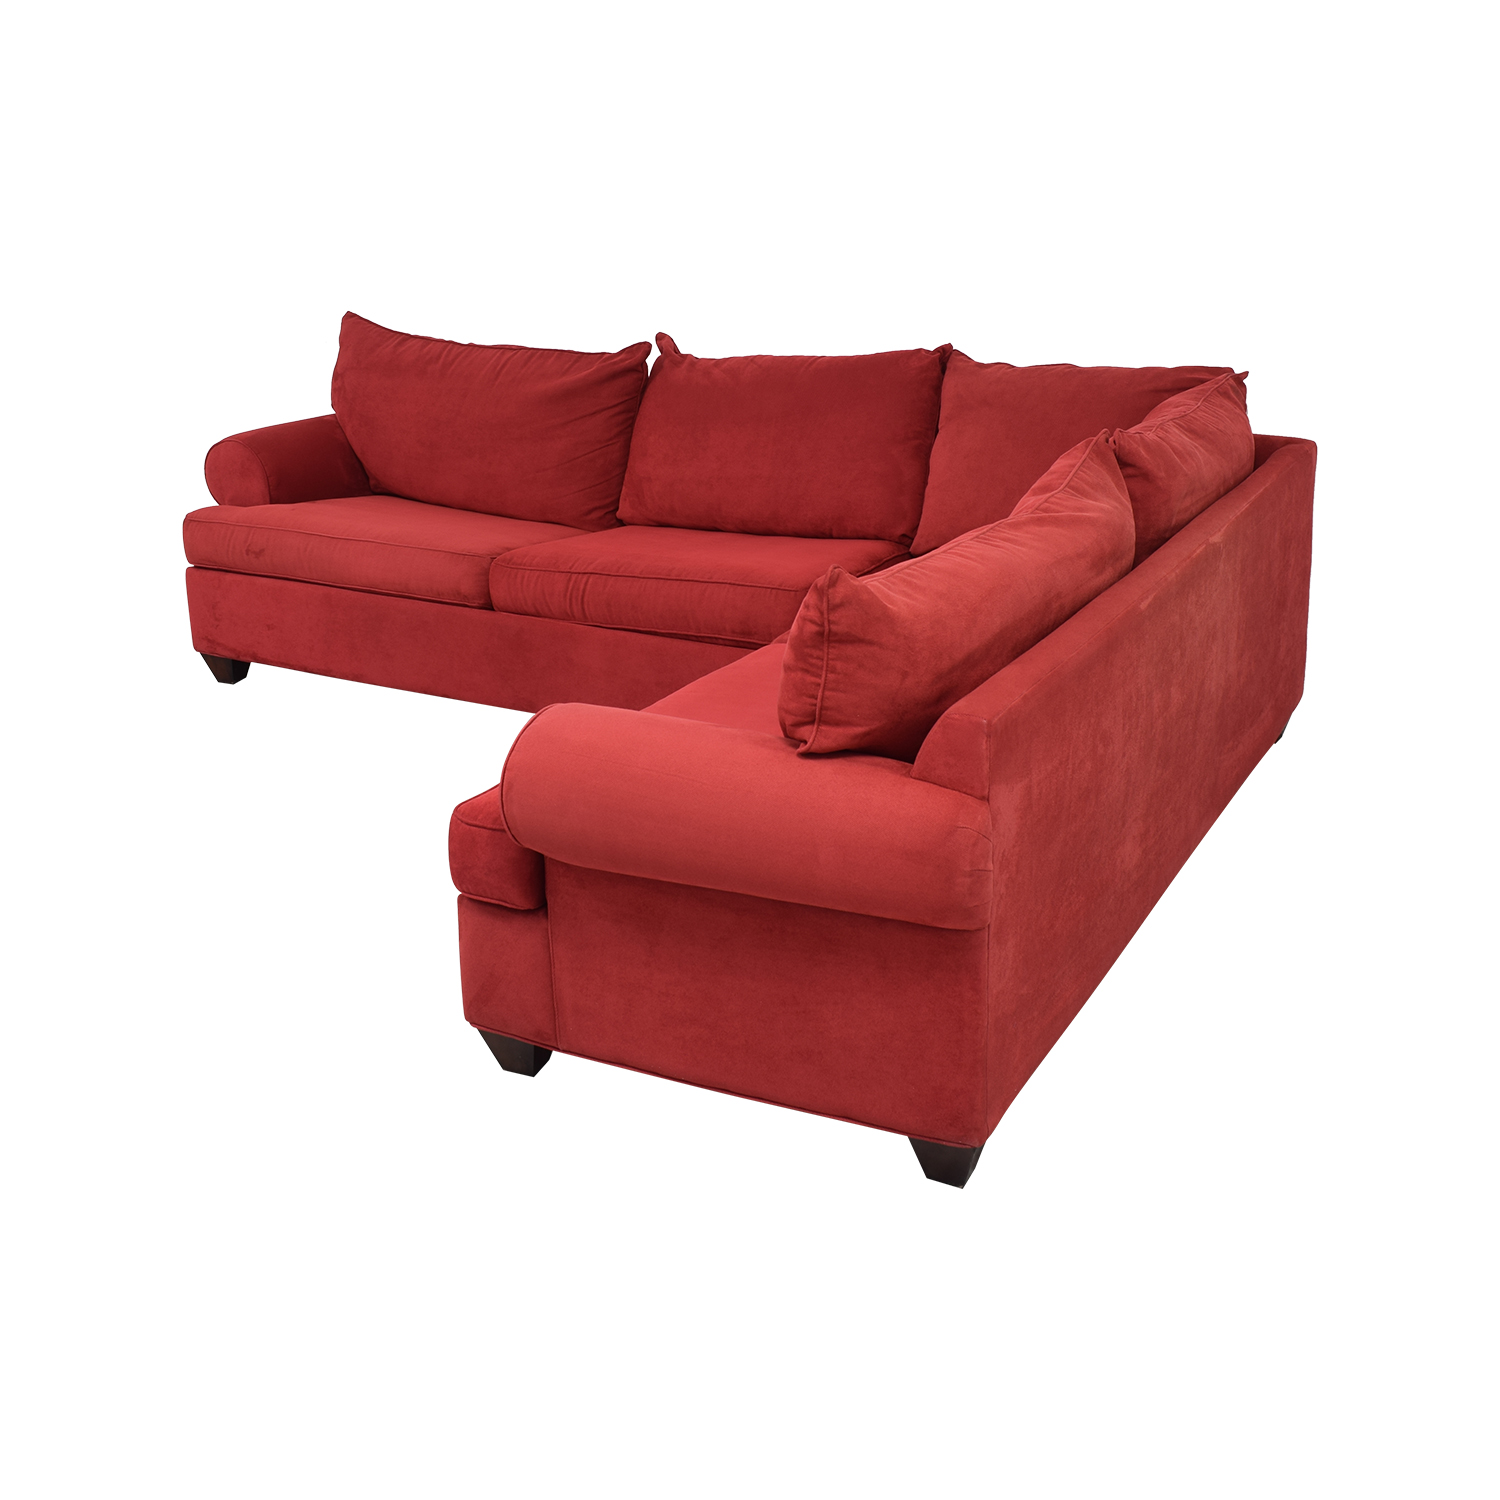 Raymour & Flanigan Raymour & Flanigan Sleeper Sectional Sofa coupon